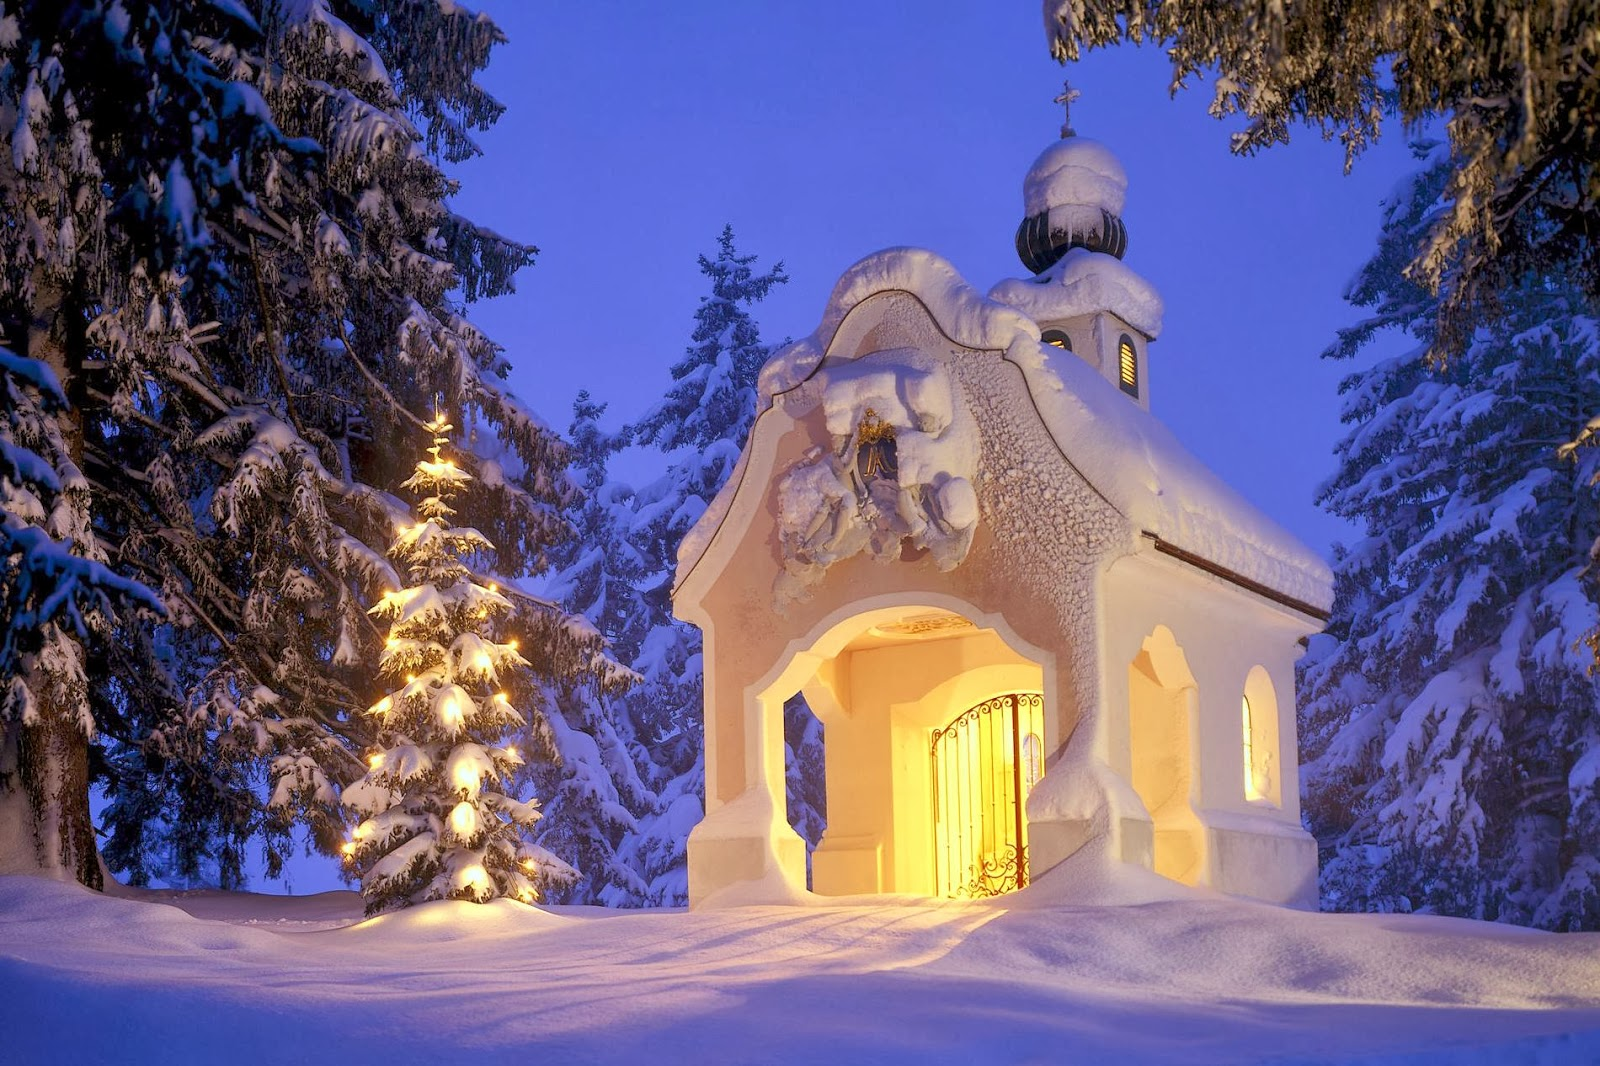 Rare collection of widescreen christmas wallpapers hd - Christmas nature wallpaper ...